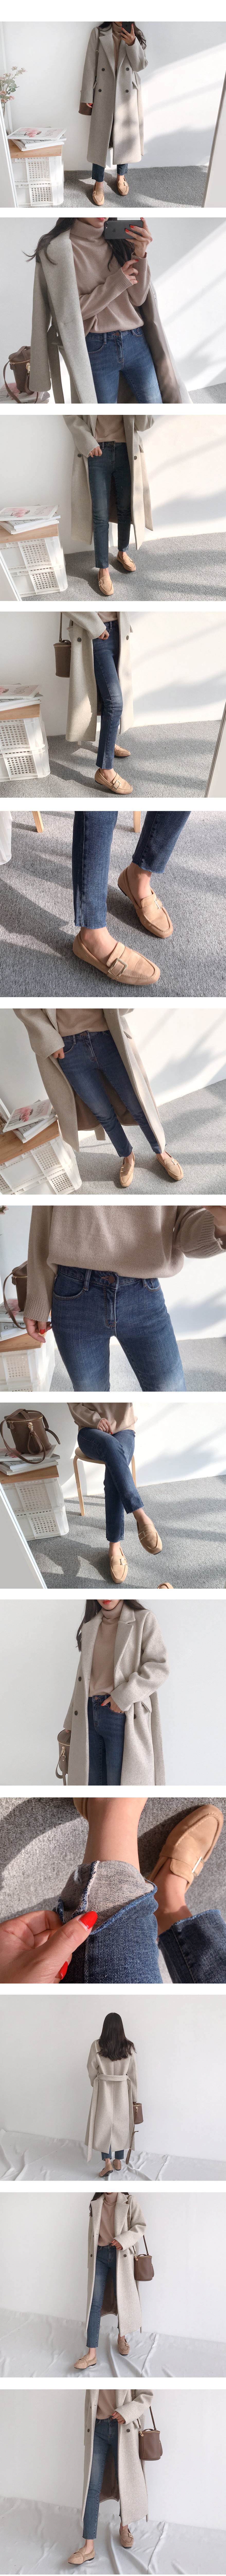 Warm brushed date pants